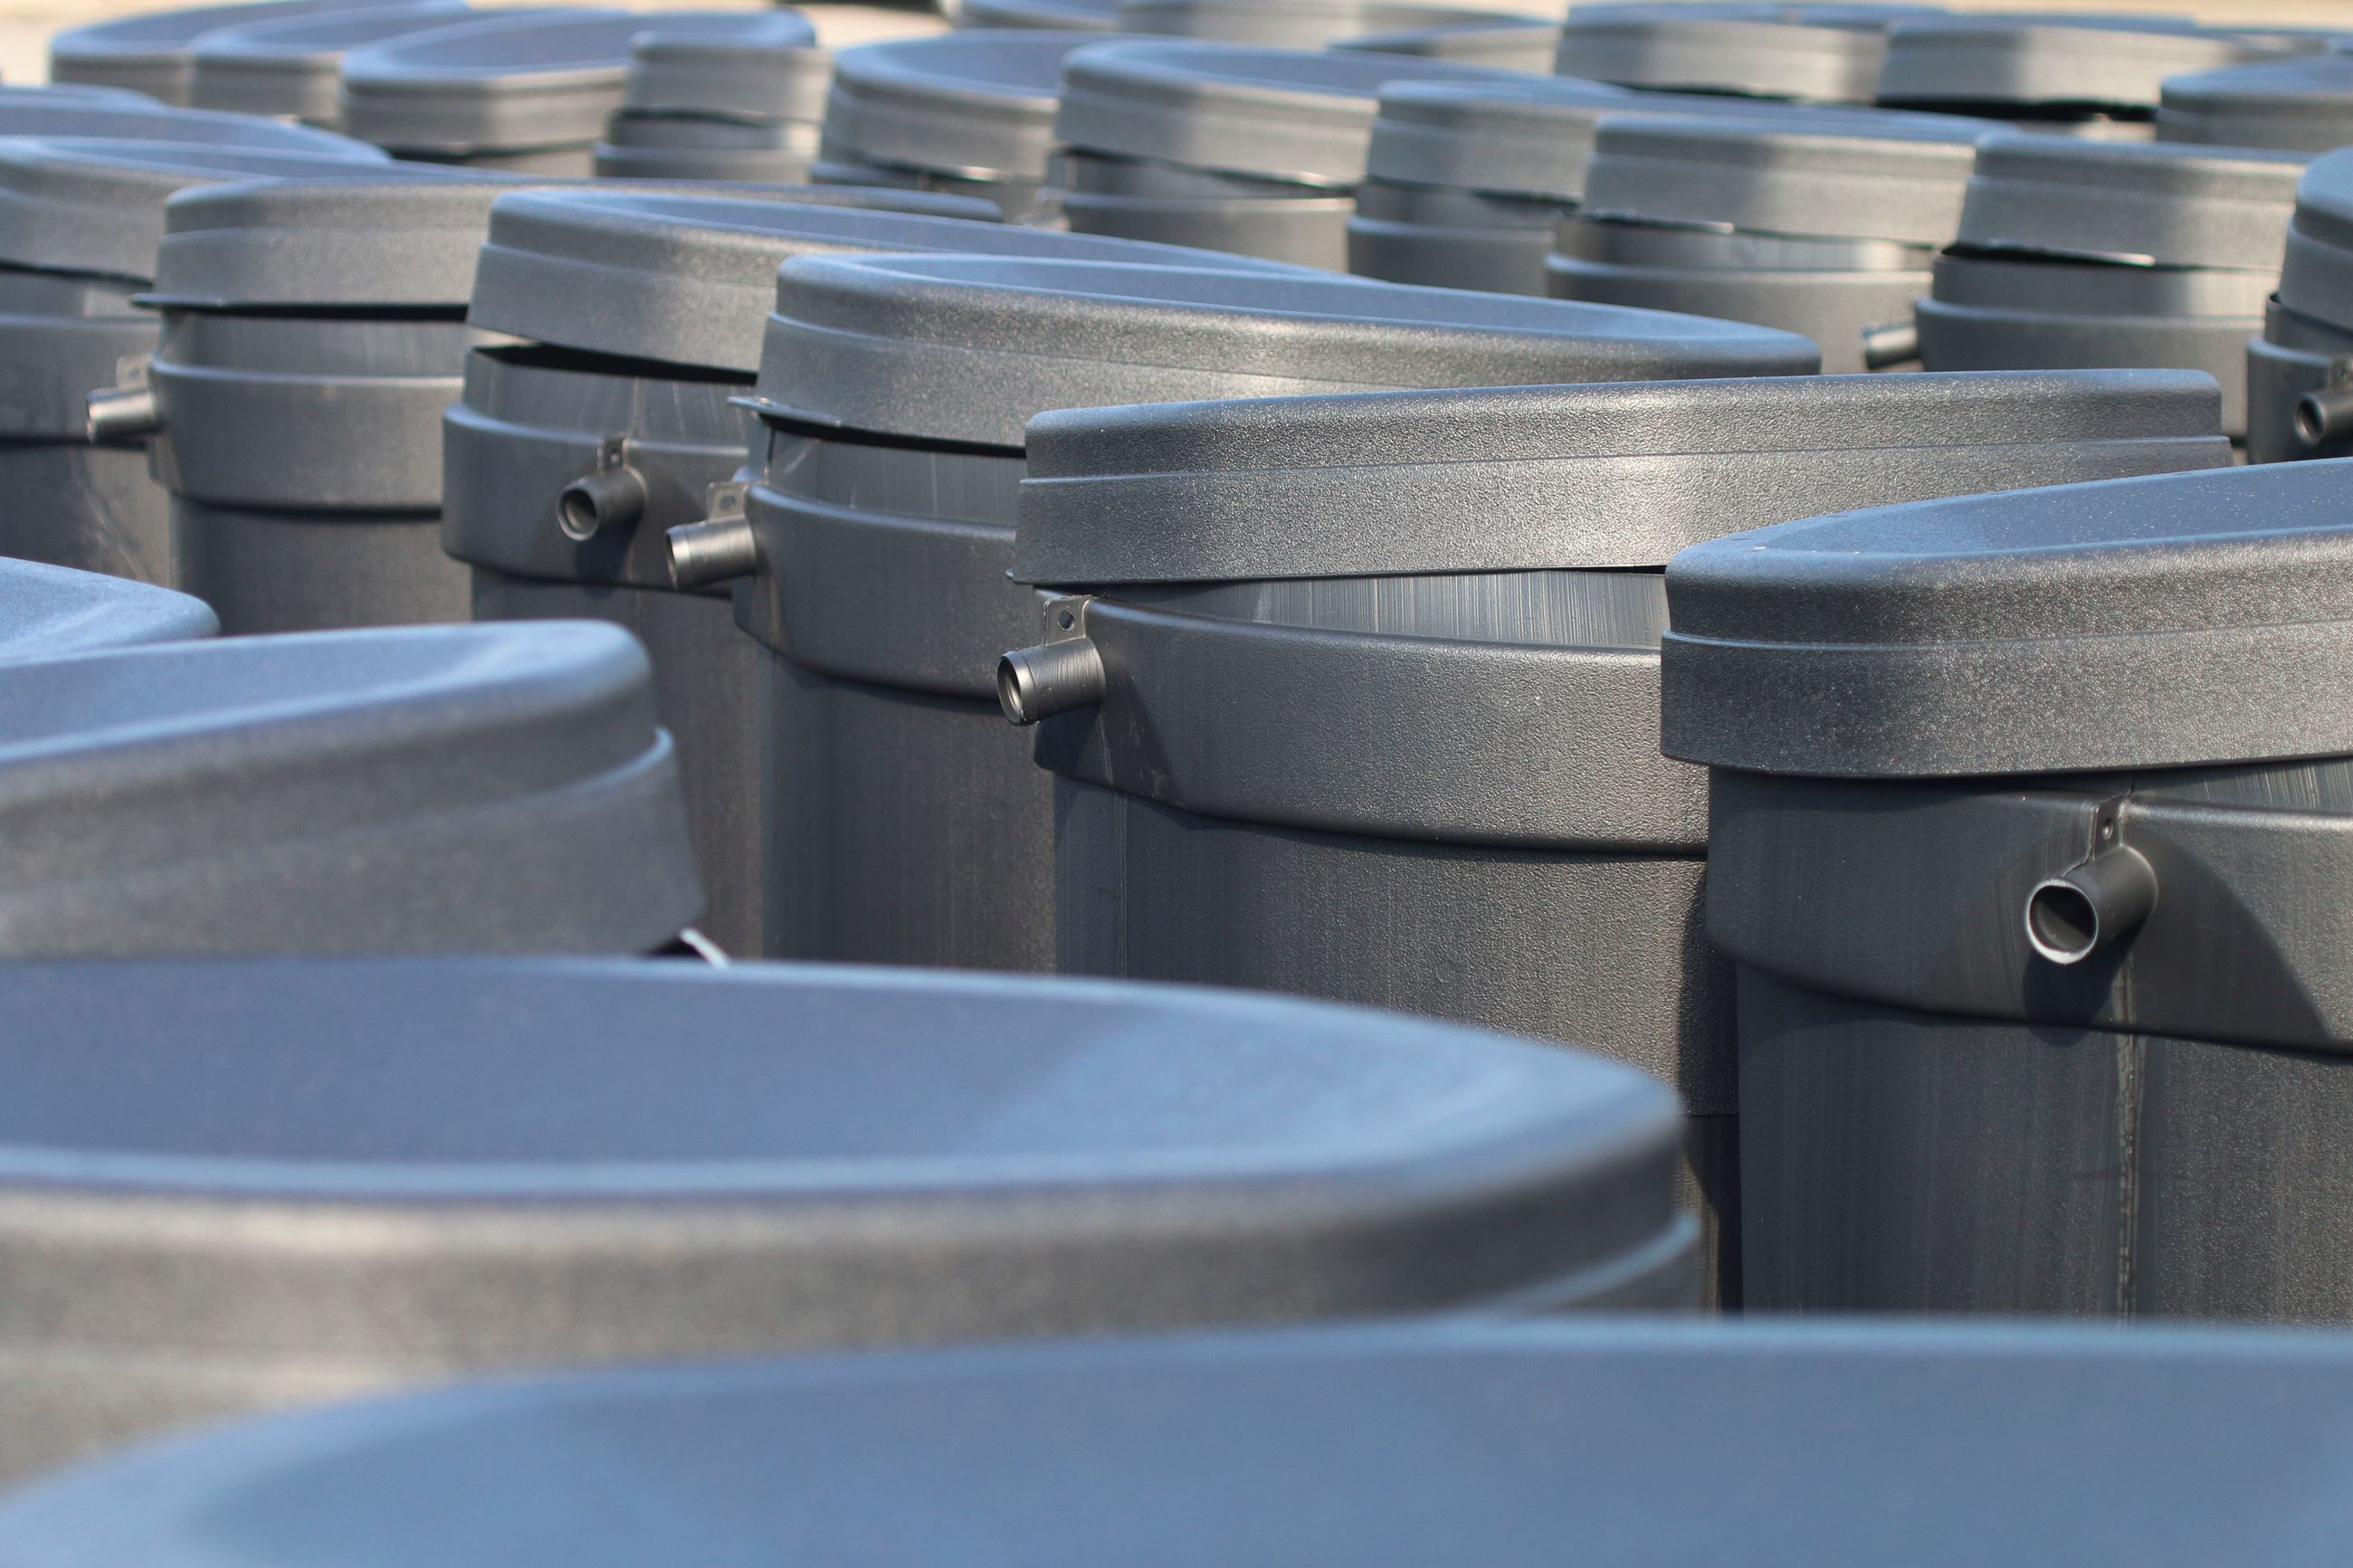 close up of many grey rain barrels lined up together